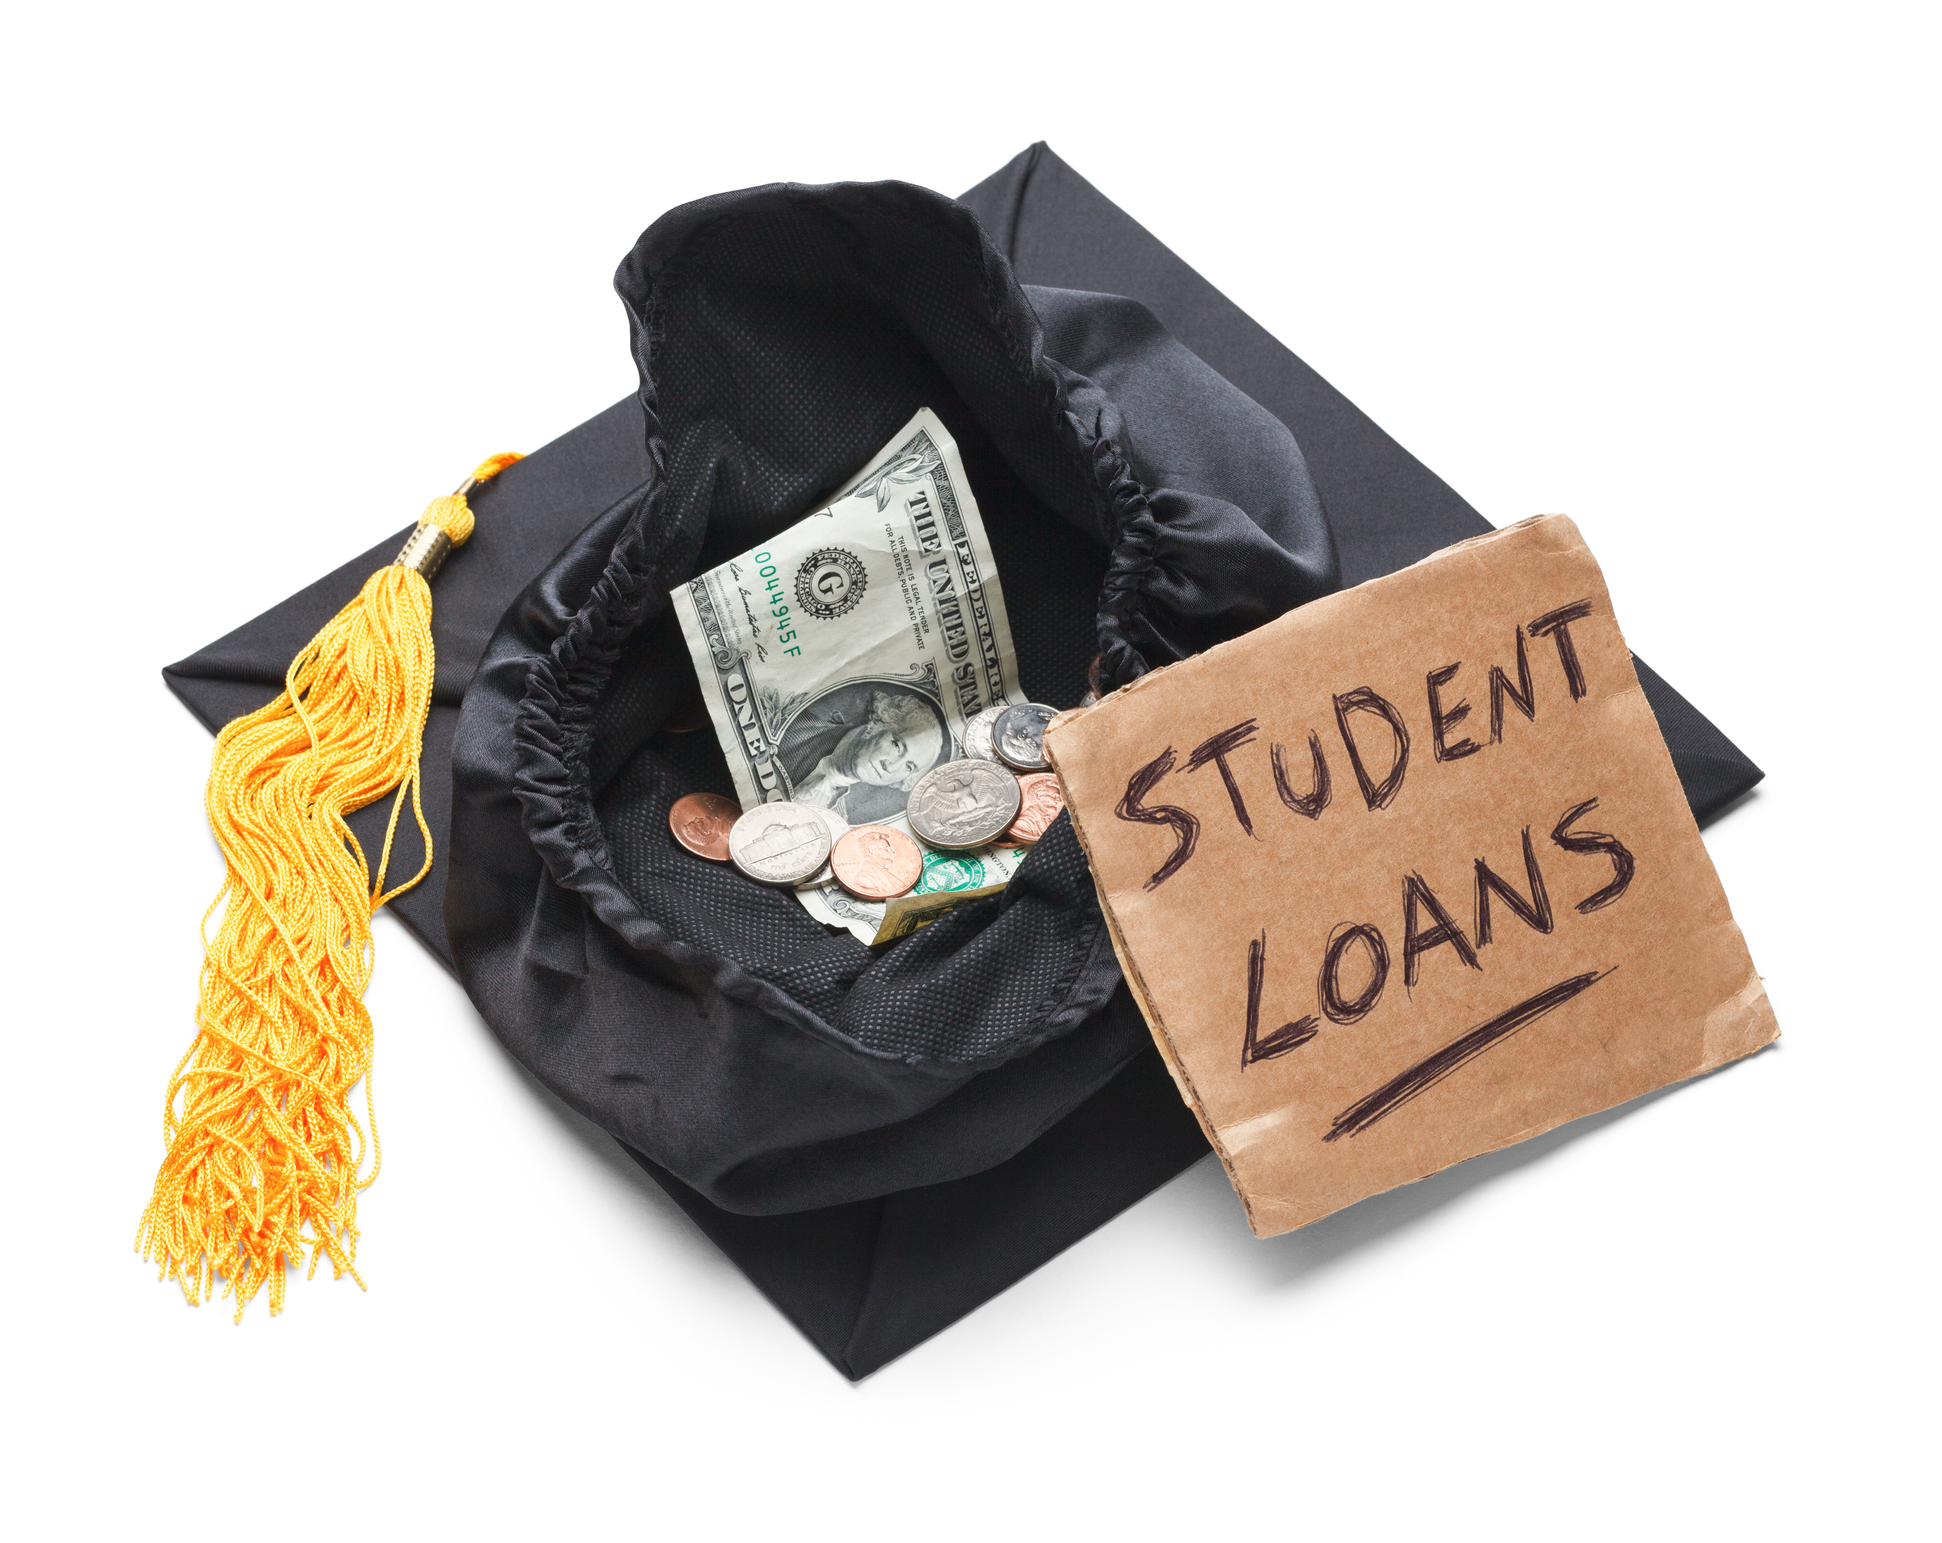 Graduation cap turned upside down to collect money next to a sign that says student loans